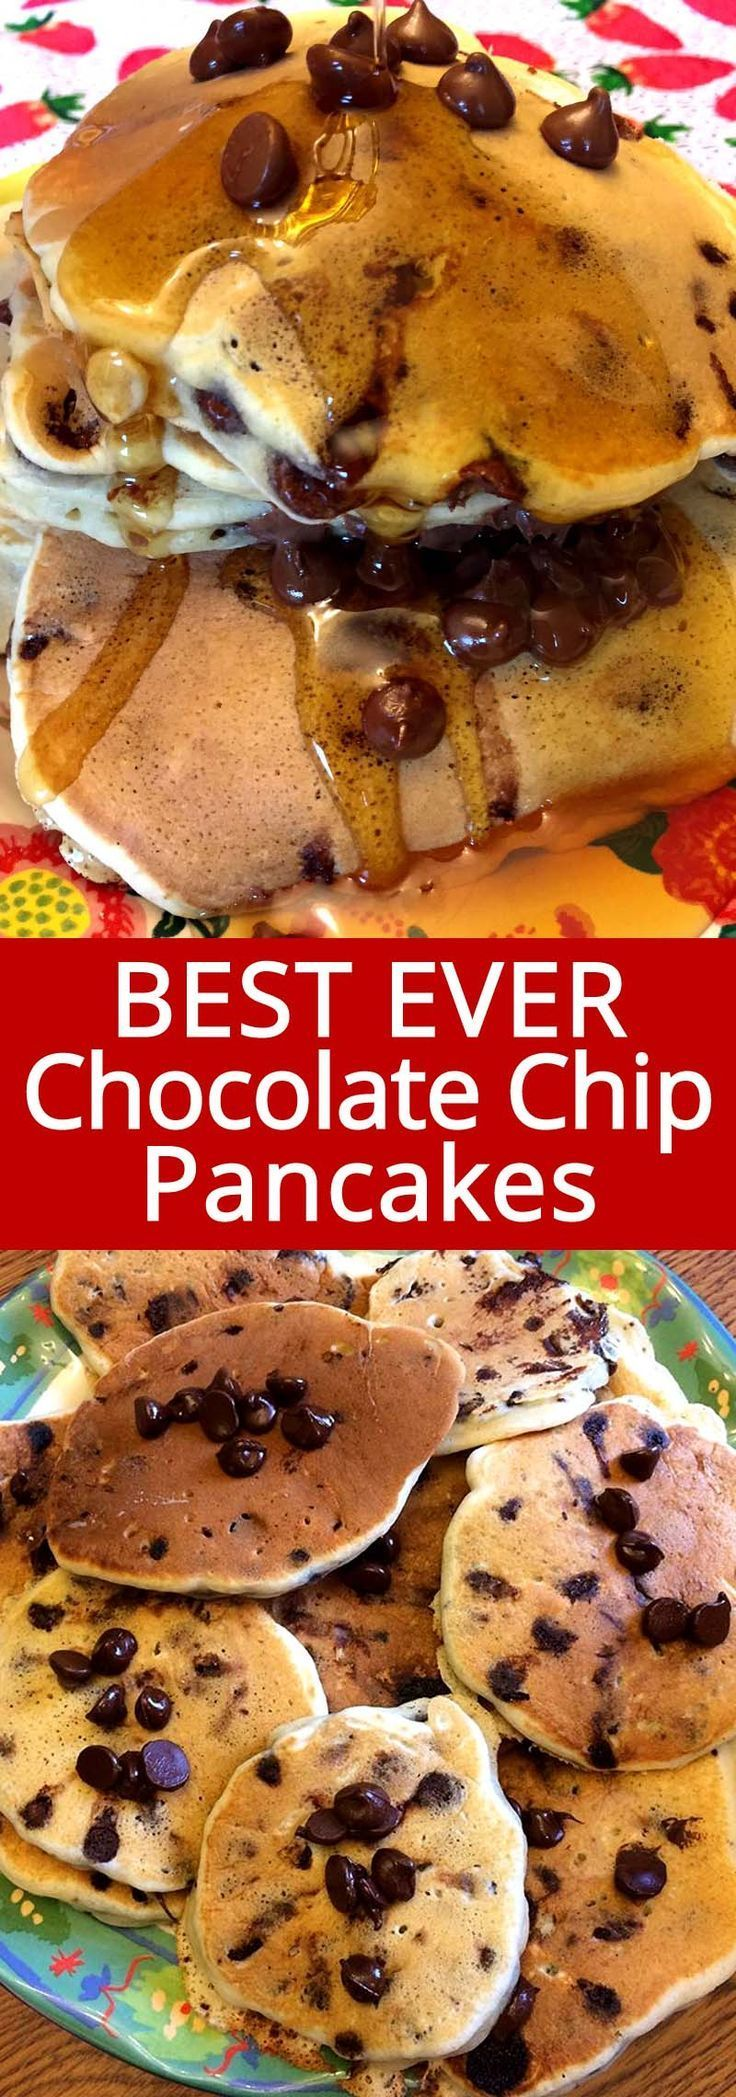 Easy Cake : These homemade chocolate cake are incredible! This Chocolate Chip Pancake ...,